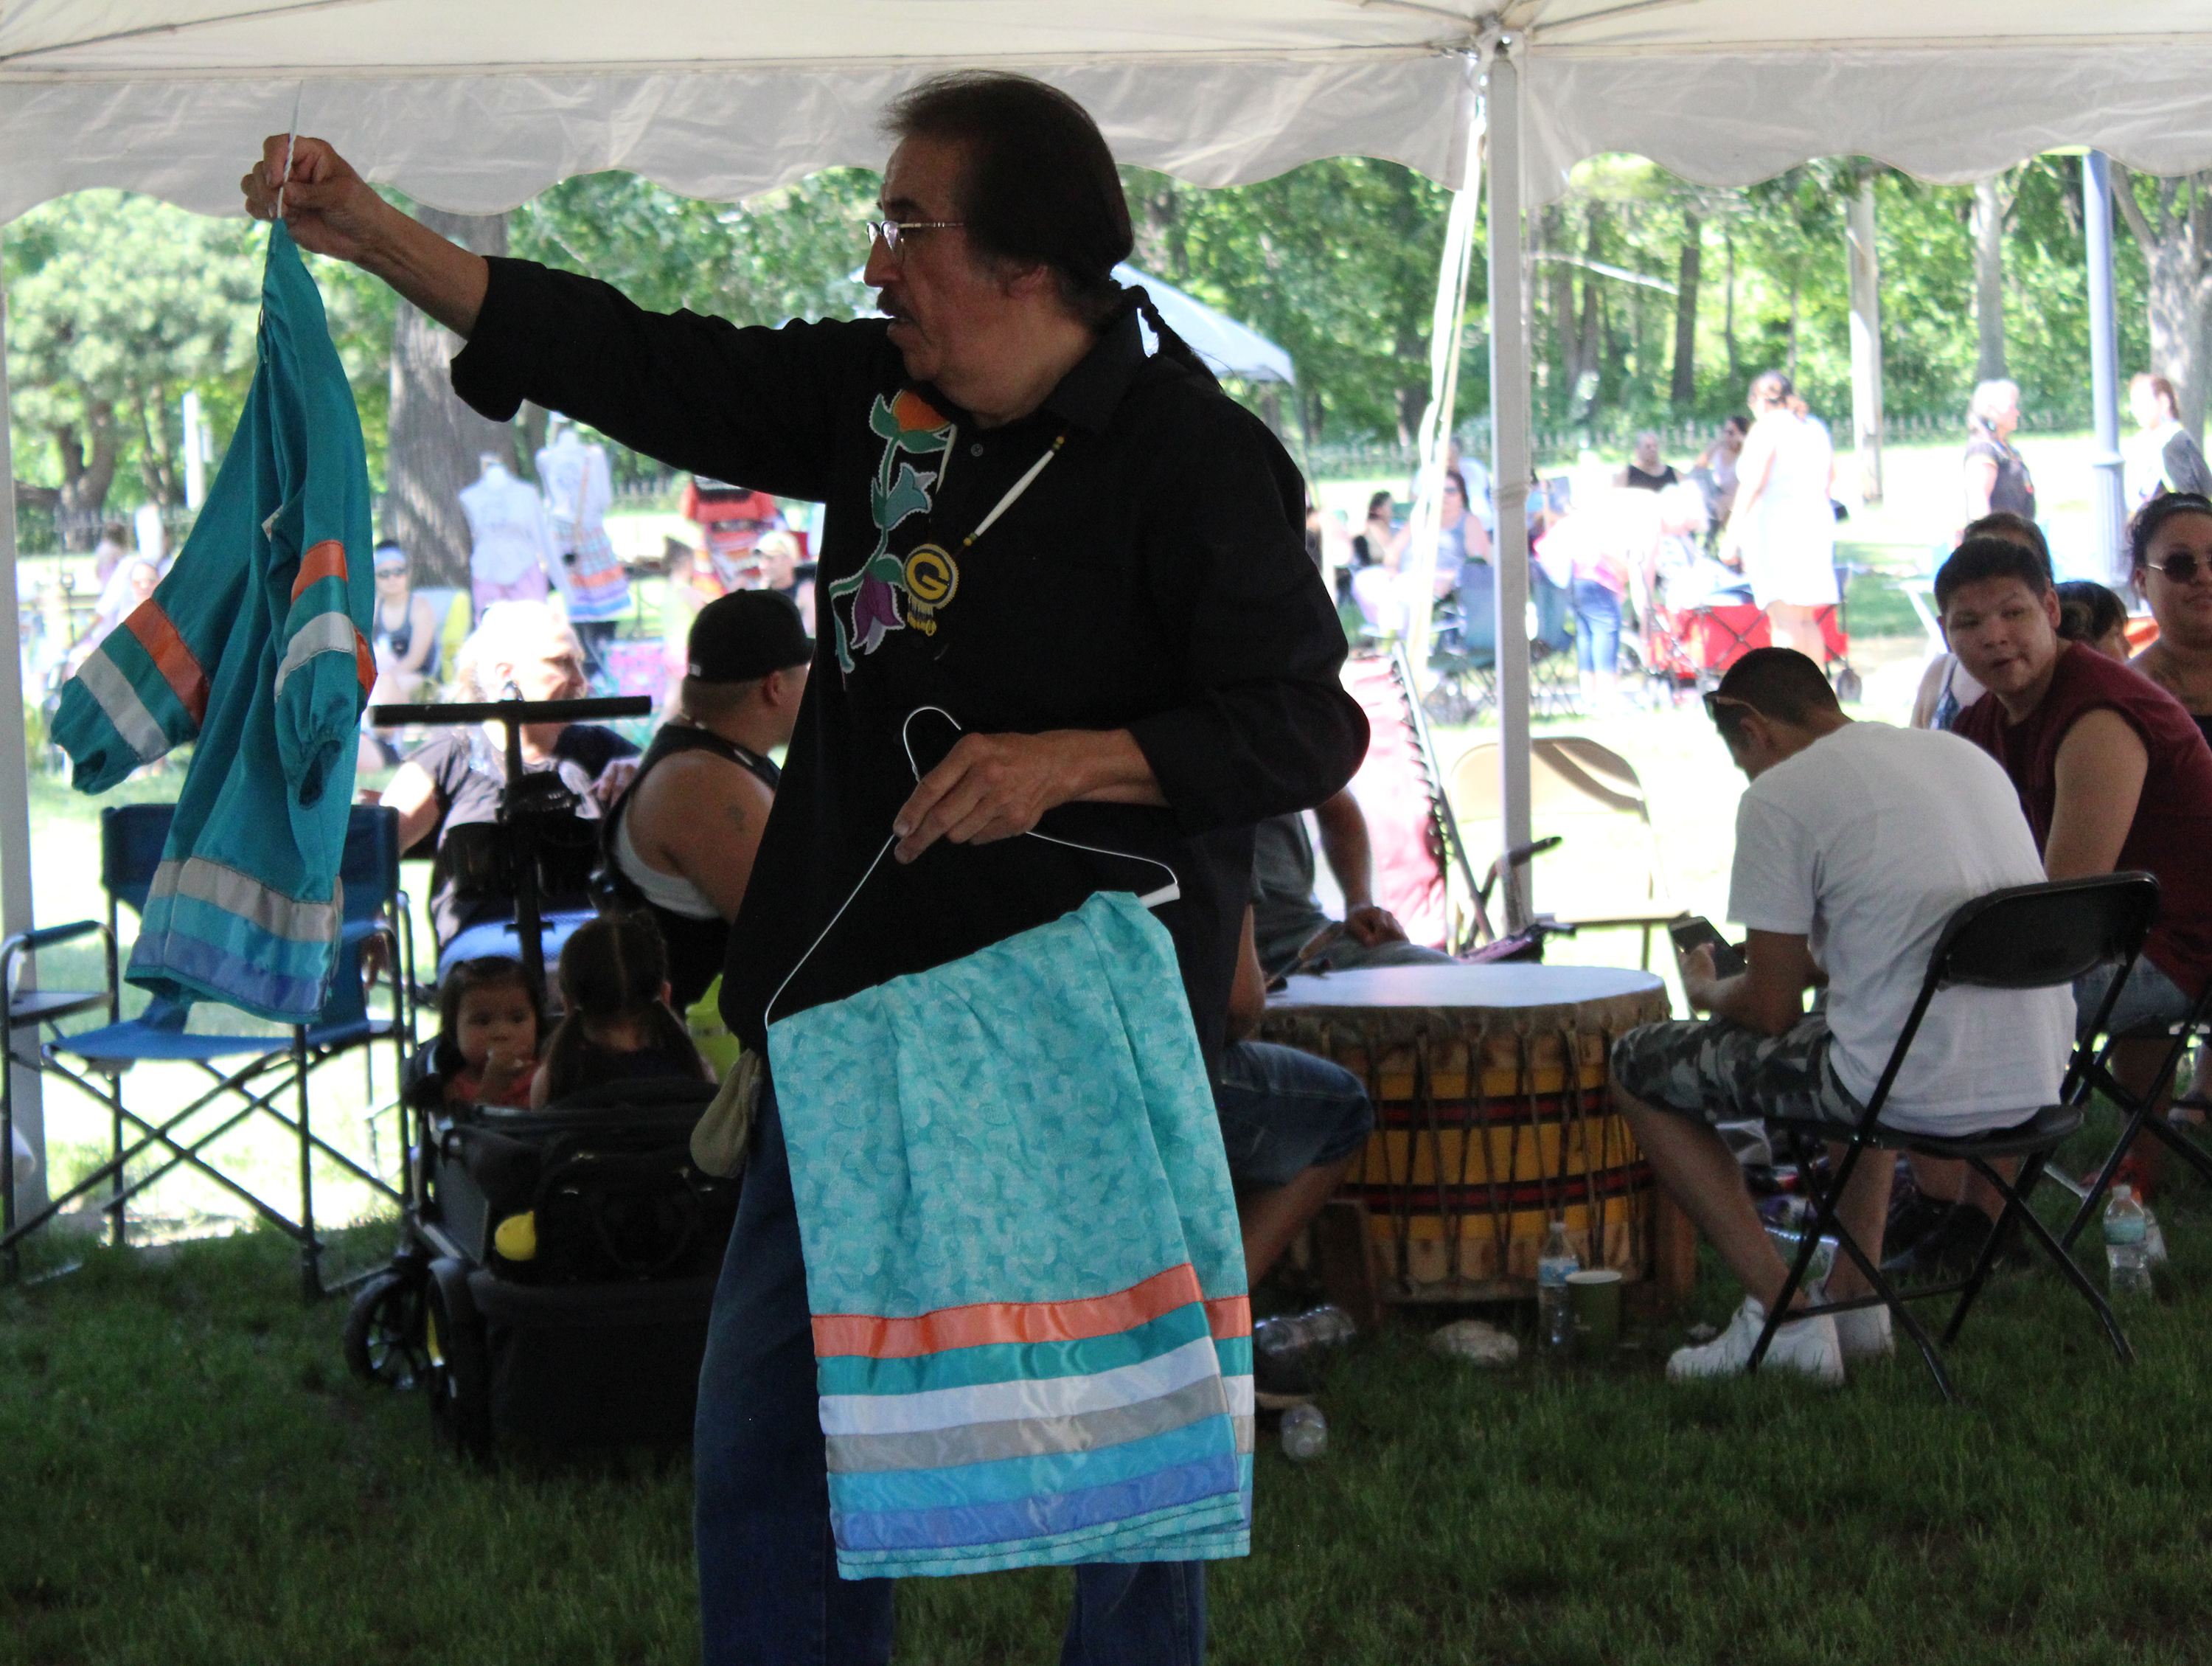 Gary Besaw with the Menominee Tribal Legislature shows off a donated outfit that was later given as a prize during the powwow June 5 at Oshkosh Public Museum.(Lee Pulaski   NEW Media)